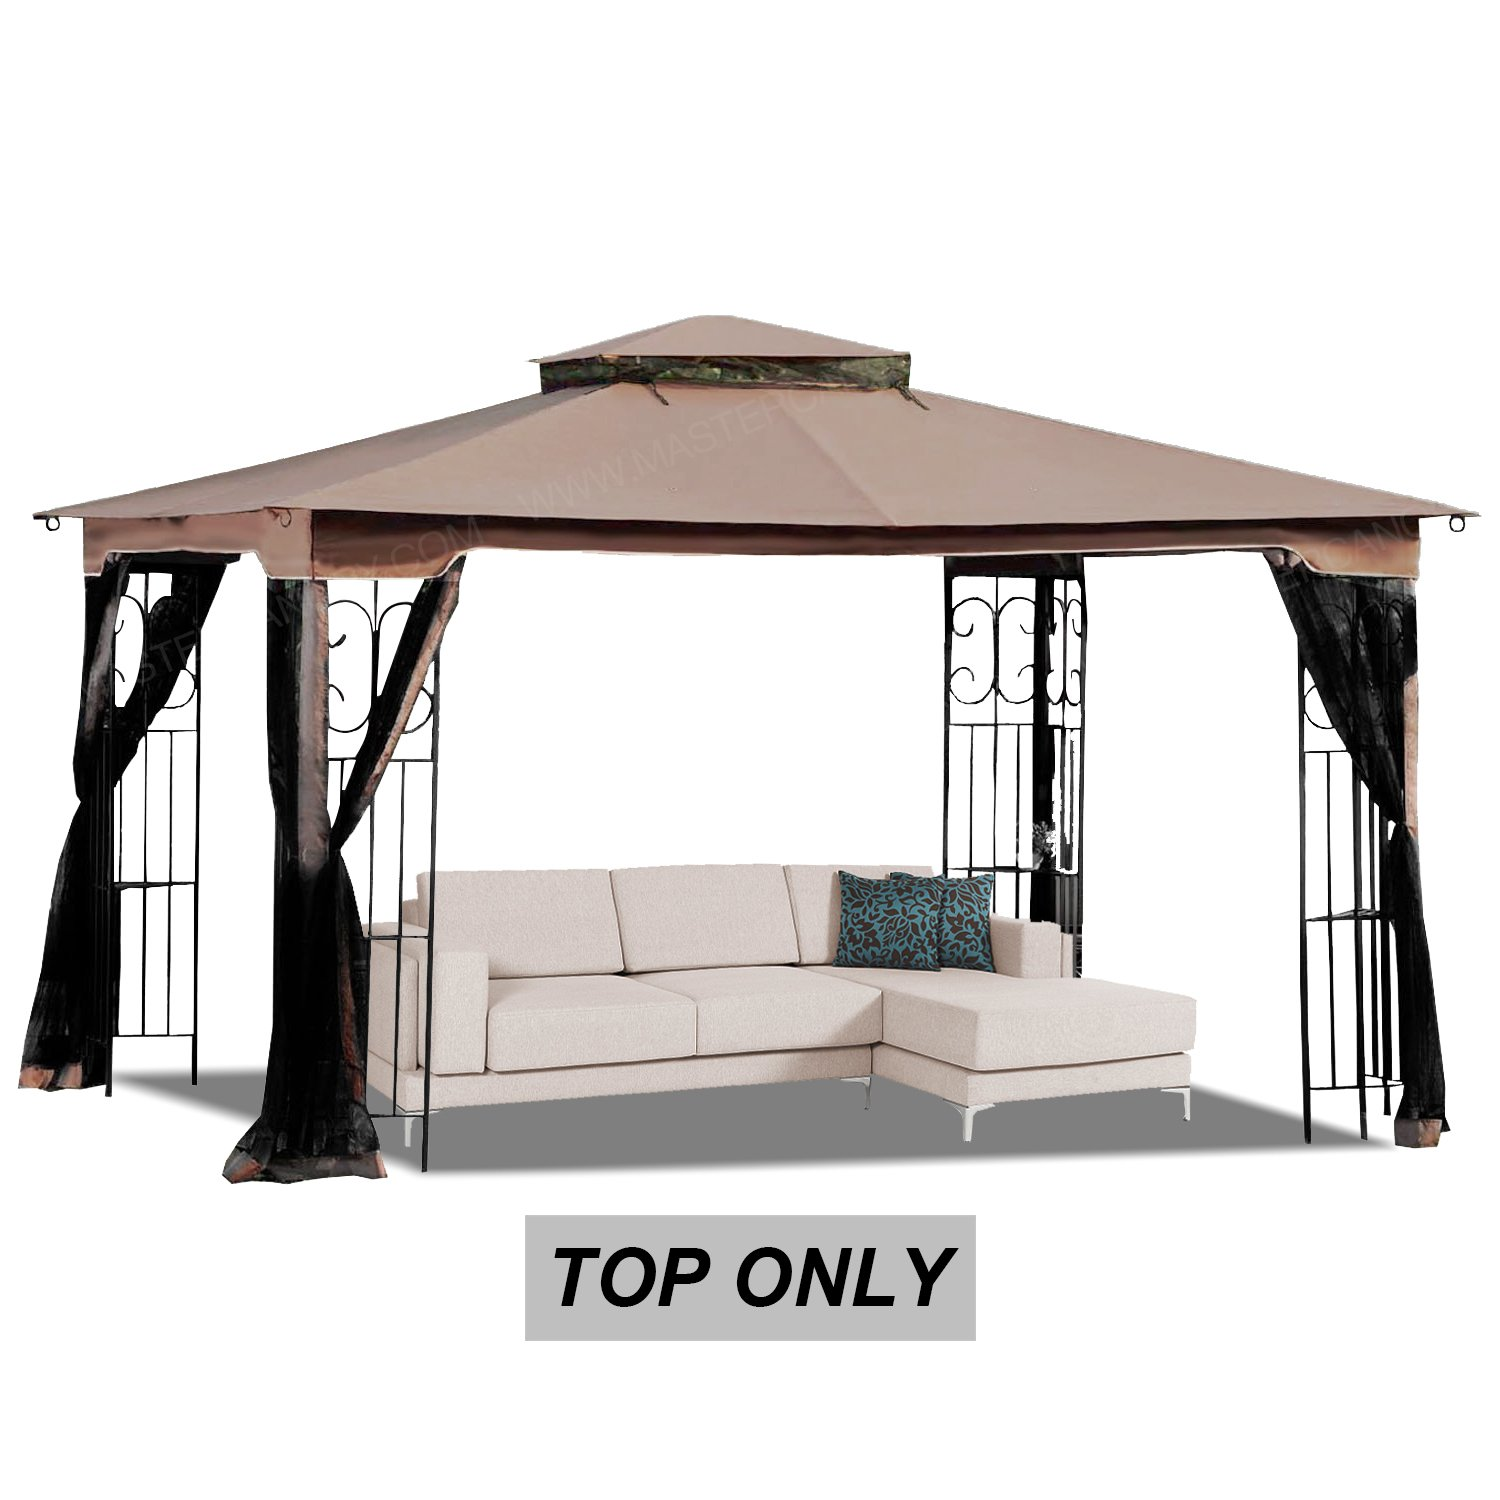 MASTERCANOPY 10' x 12' Gazebo Replacement Canopy Roof for Model GZ798PST-E (Only Top)